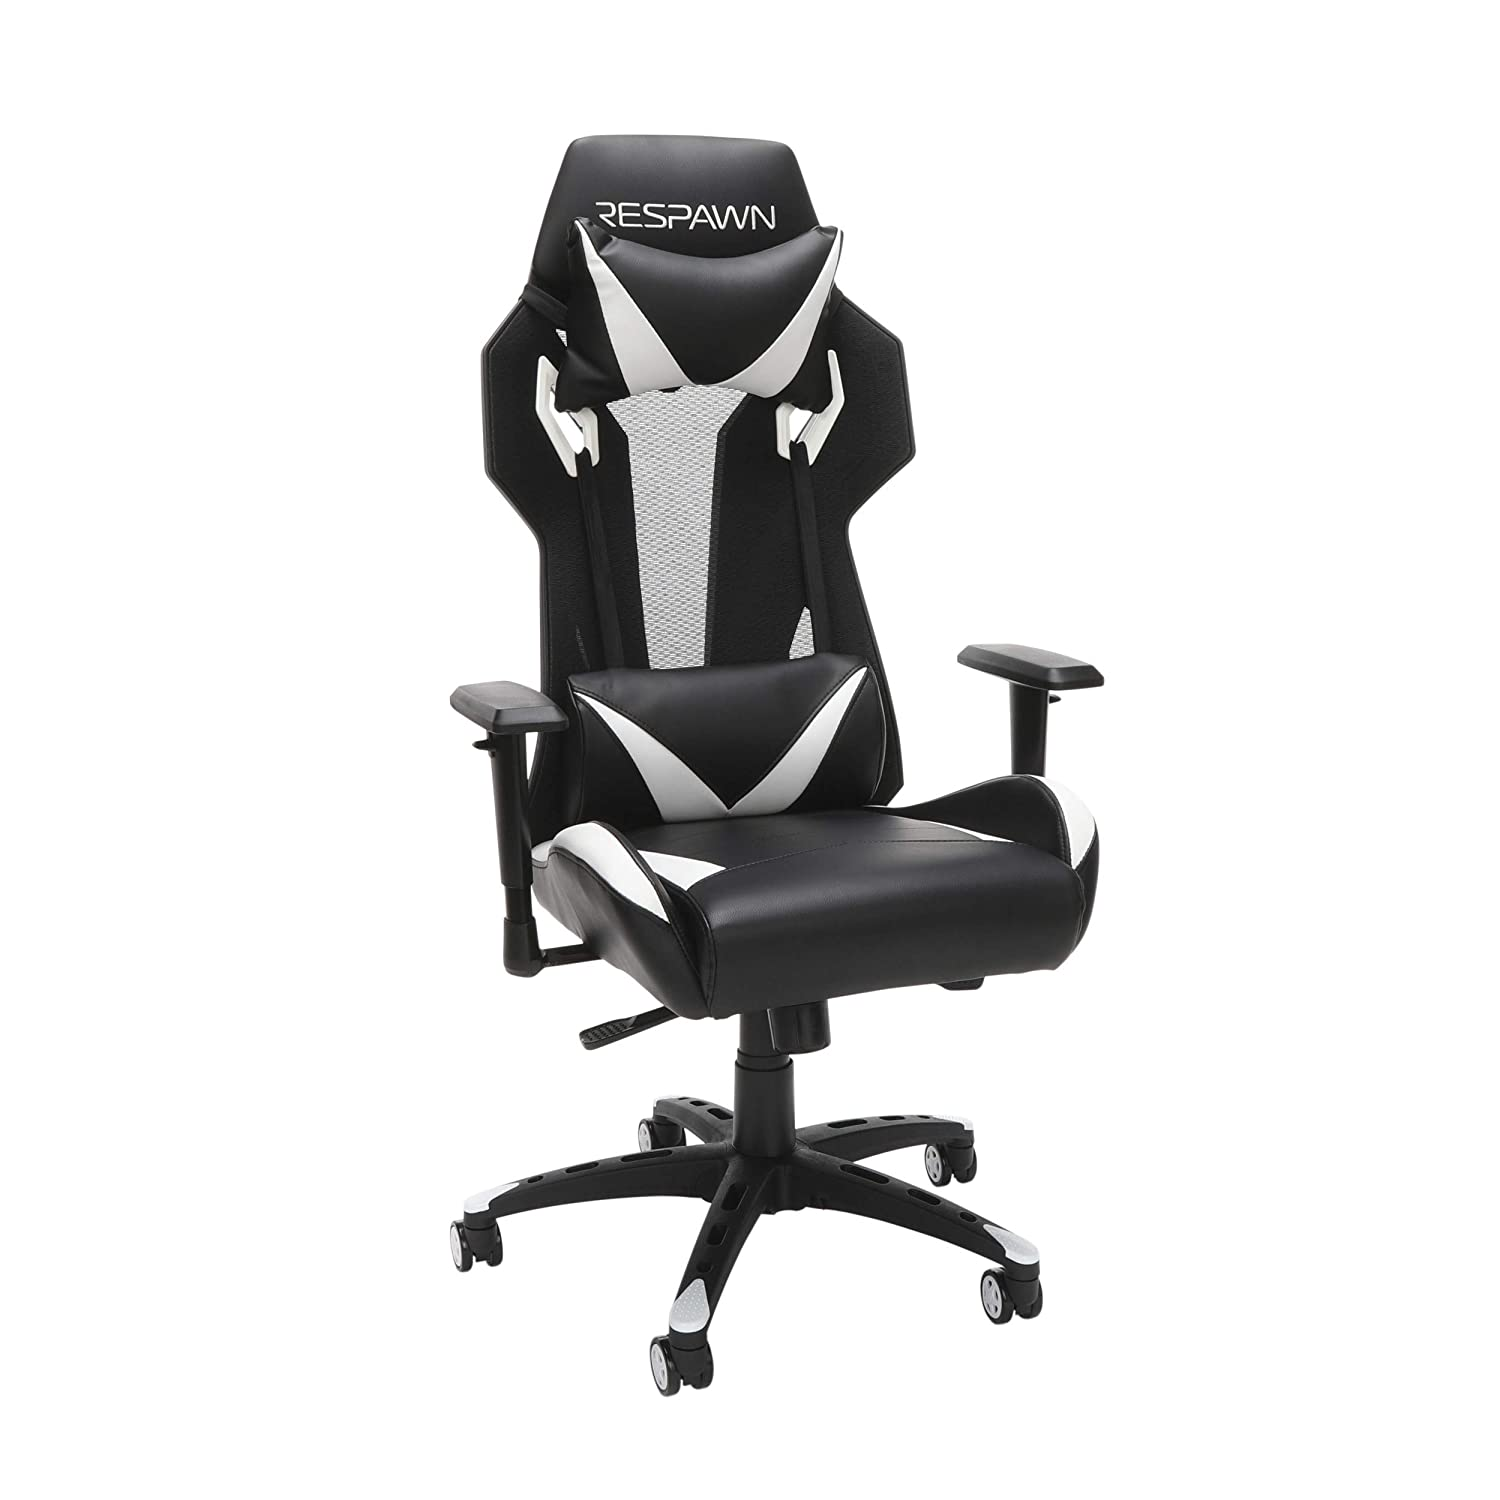 Top 10 Best Respawn Gaming Chairs In 2021 Review 34